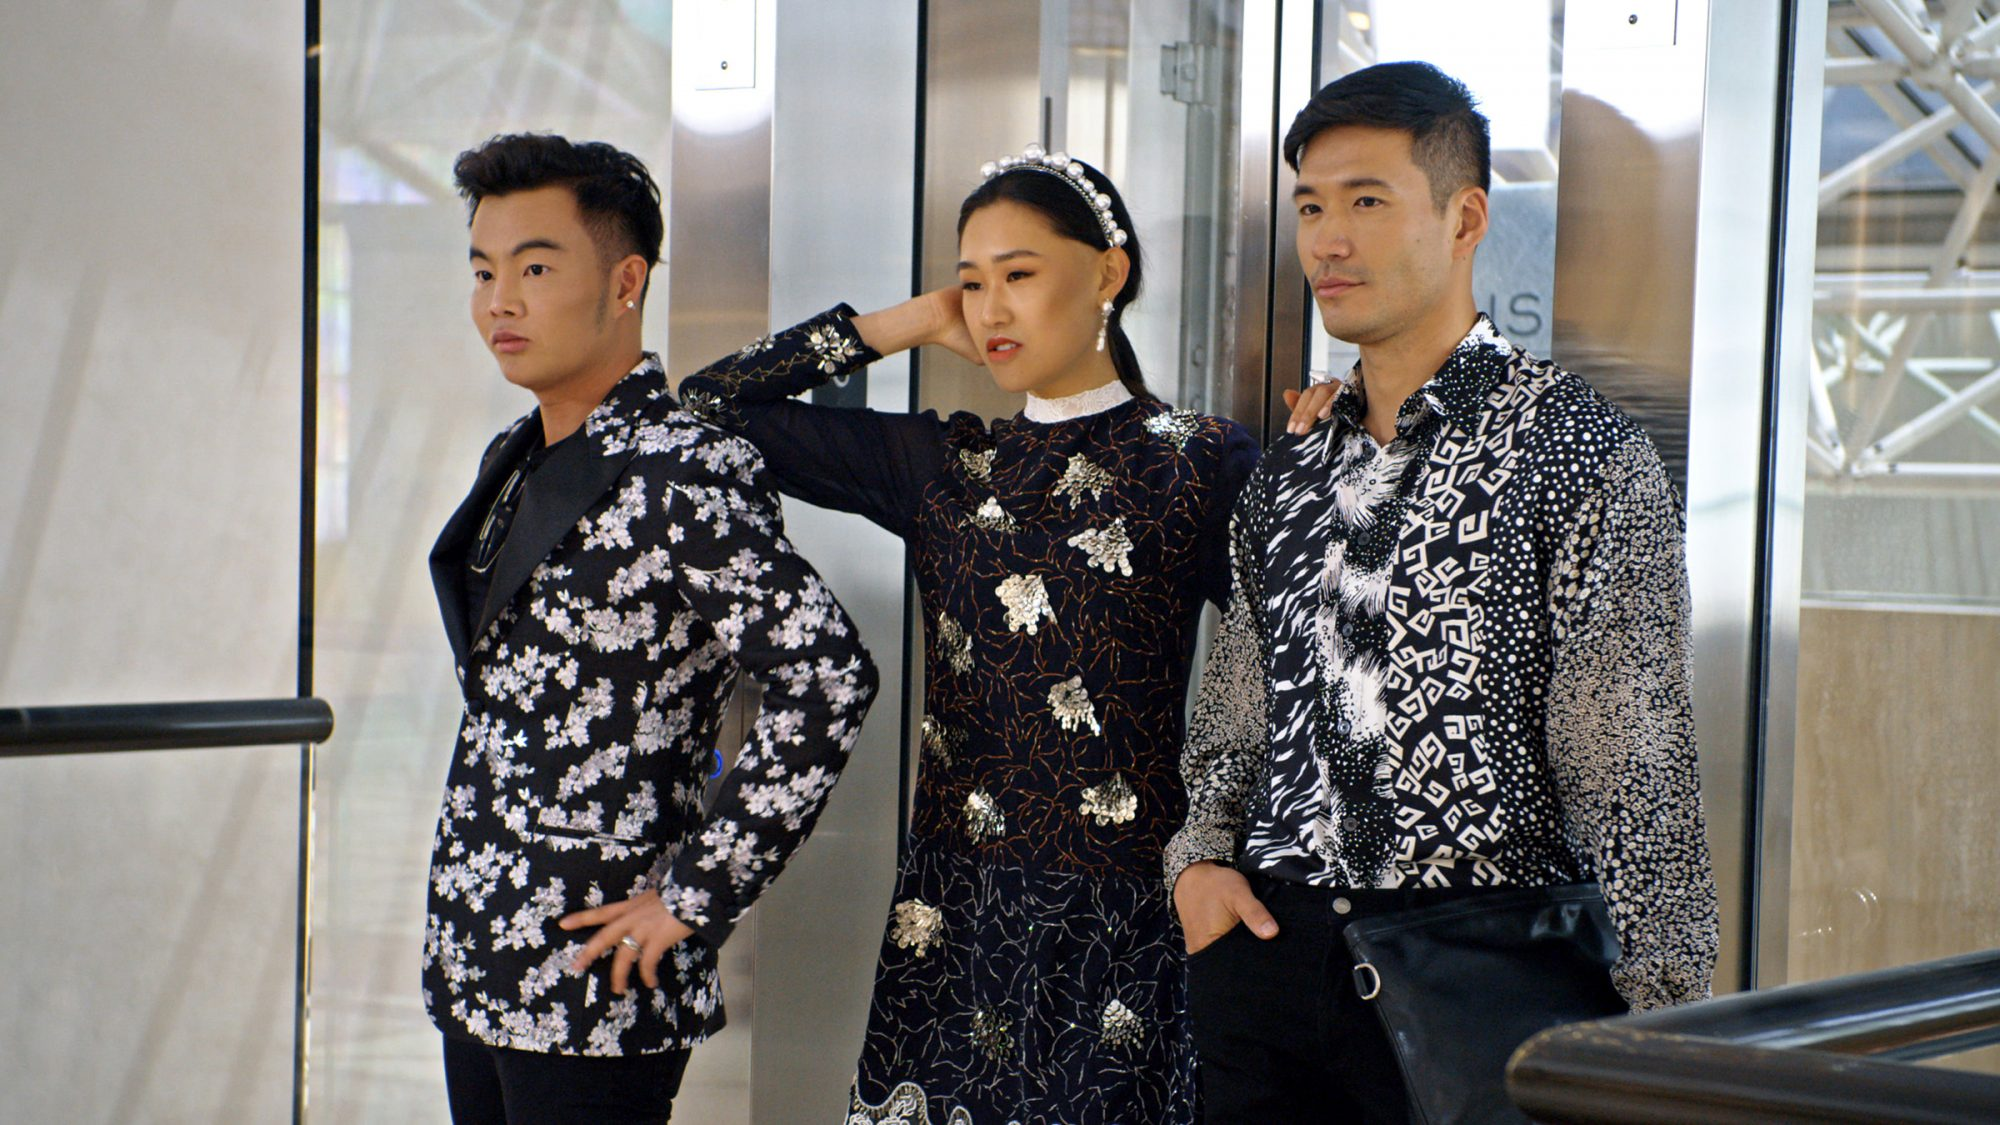 """Kane Lim, Jaime Xie and Kevin Kreider in episode 8 """"Will You Marry Me?"""" of Bling Empire: Season 1"""